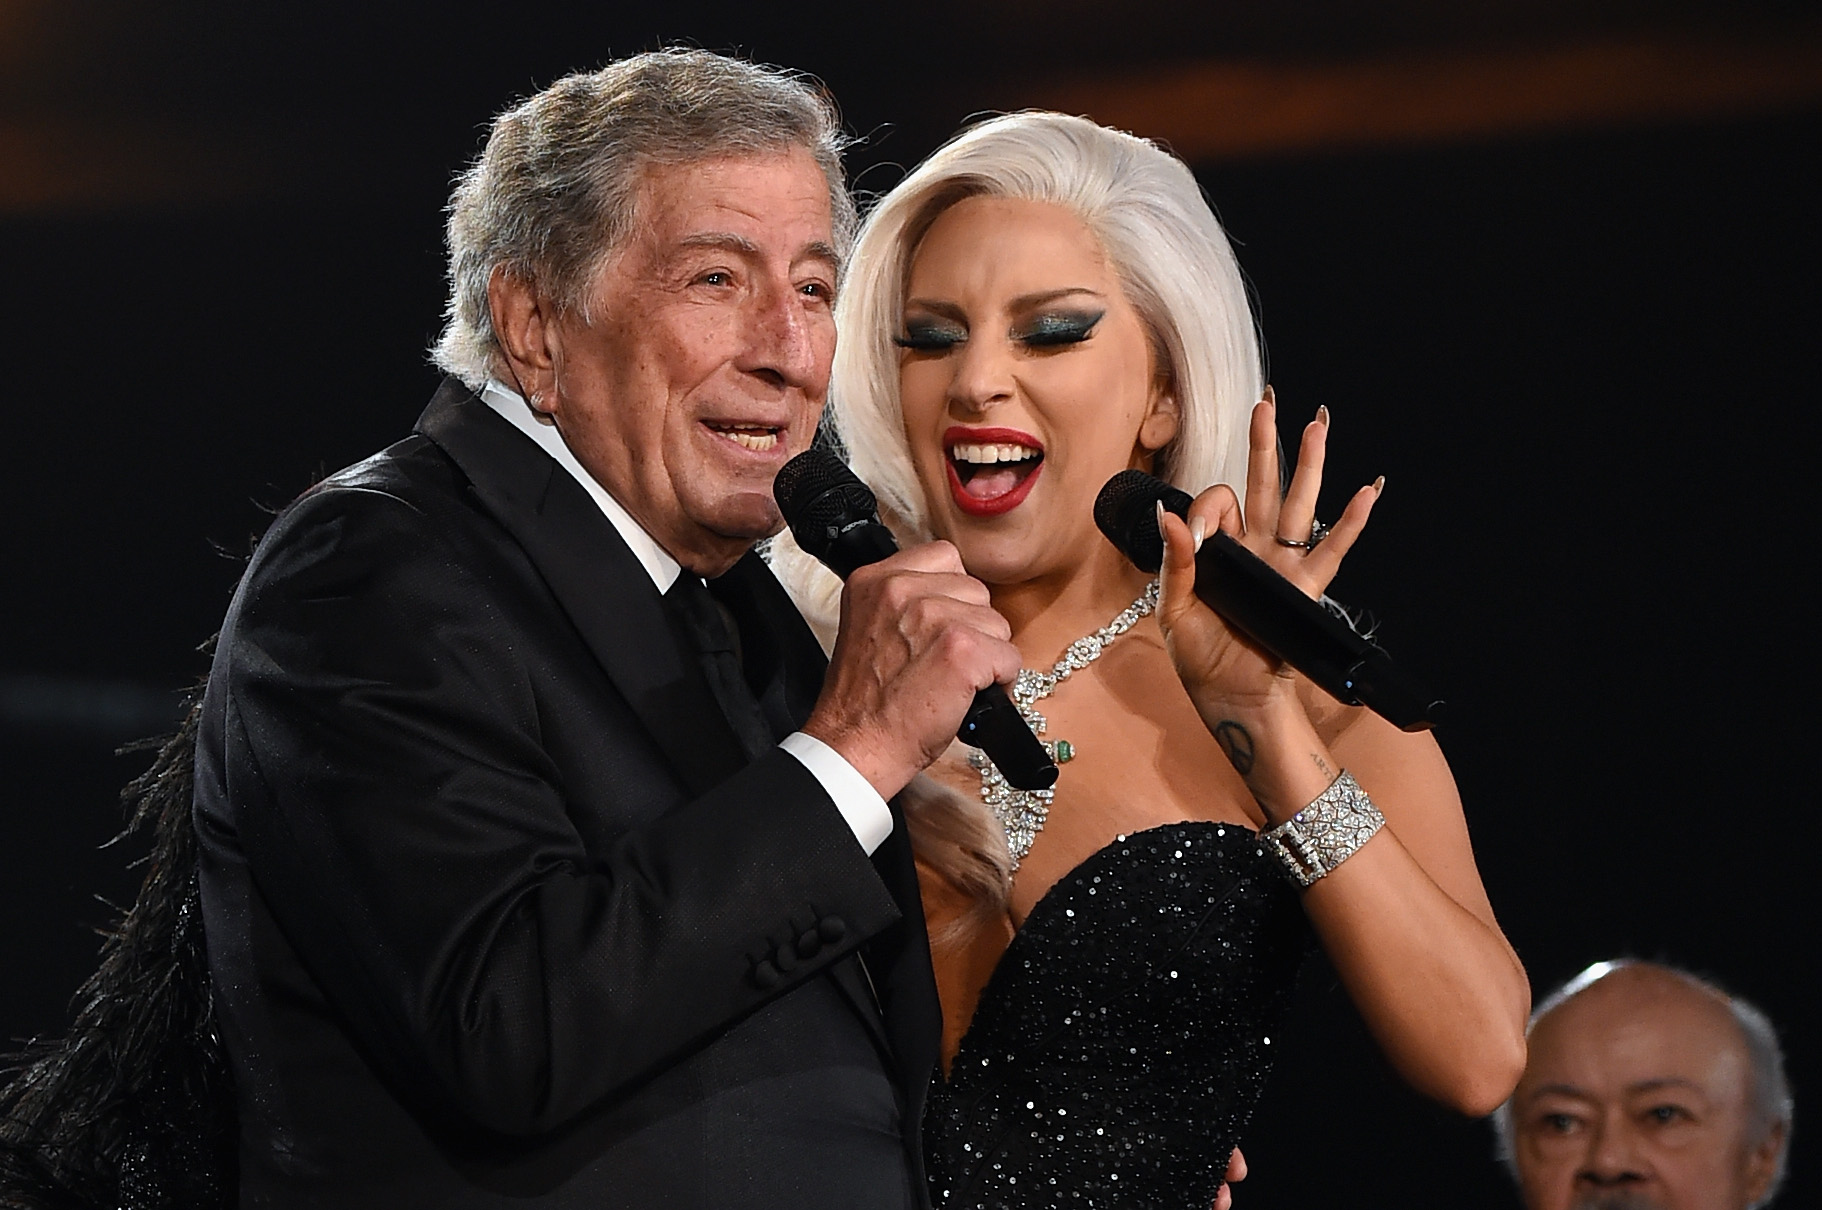 an analysis of tony bennett and lady gagas song cheek to cheek Range: f#2 - g5 - c6 (e7) longest note: 20 seconds (the abramovic method) vocal type: lyric mezzo-soprano, though contralto is a common but incorrect perception(3 octaves and 3 notes.